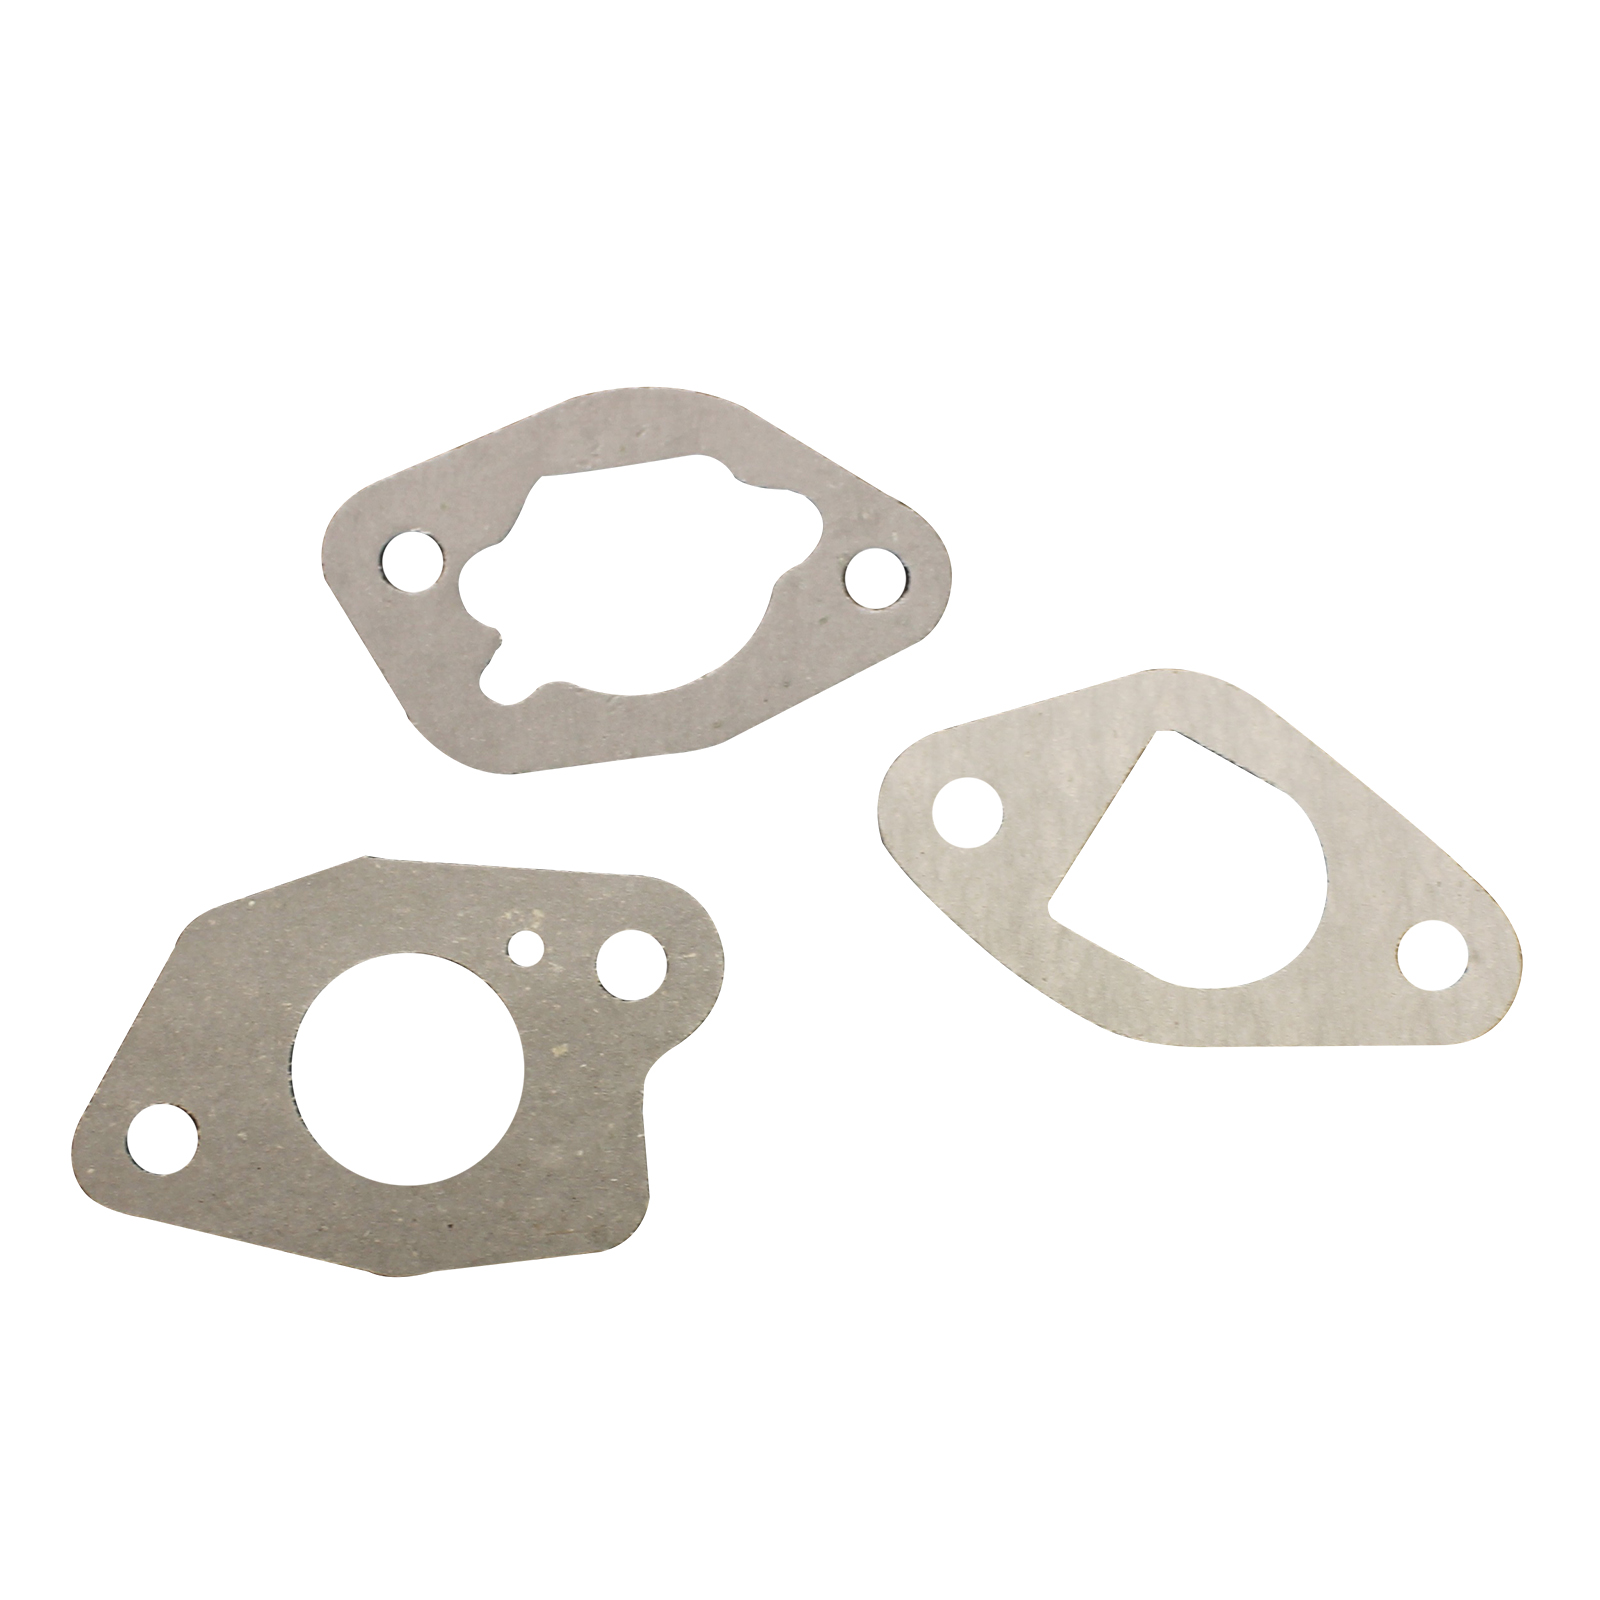 Gasket Set for CARB-0056 for GENERATOR LGE2500X (2KW)